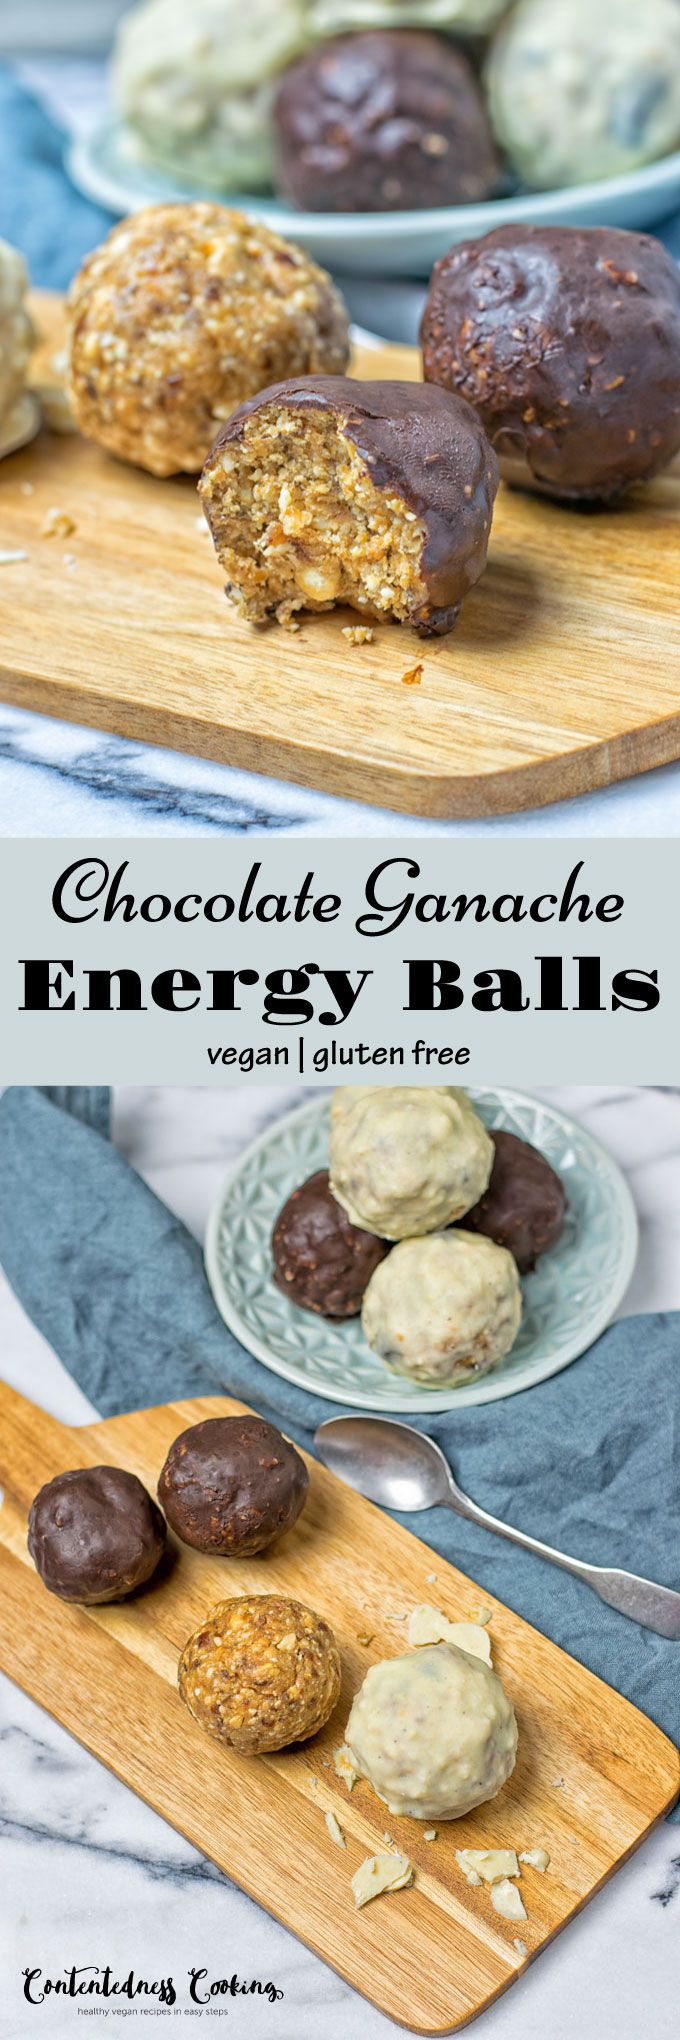 Chocolate Ganache Energy Balls | #vegan #glutenfree #contentednesscooking